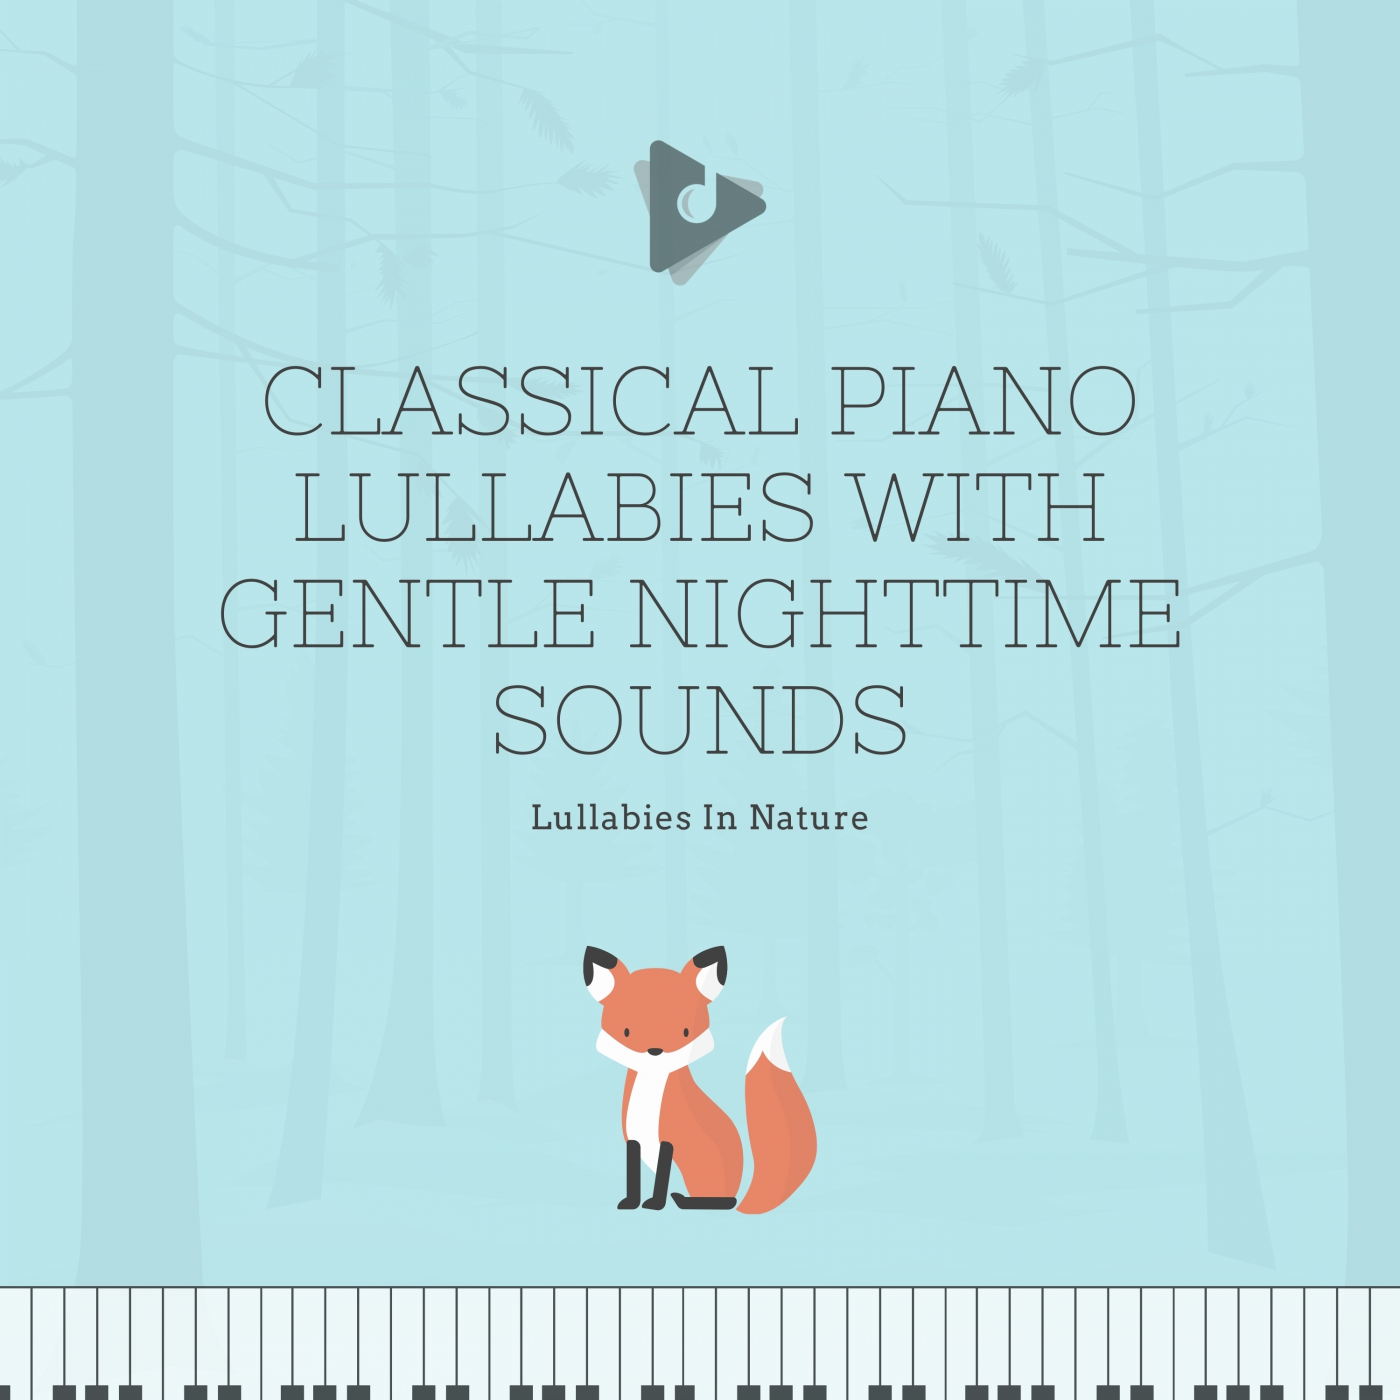 Classical Piano Lullabies with Gentle Nighttime Sounds